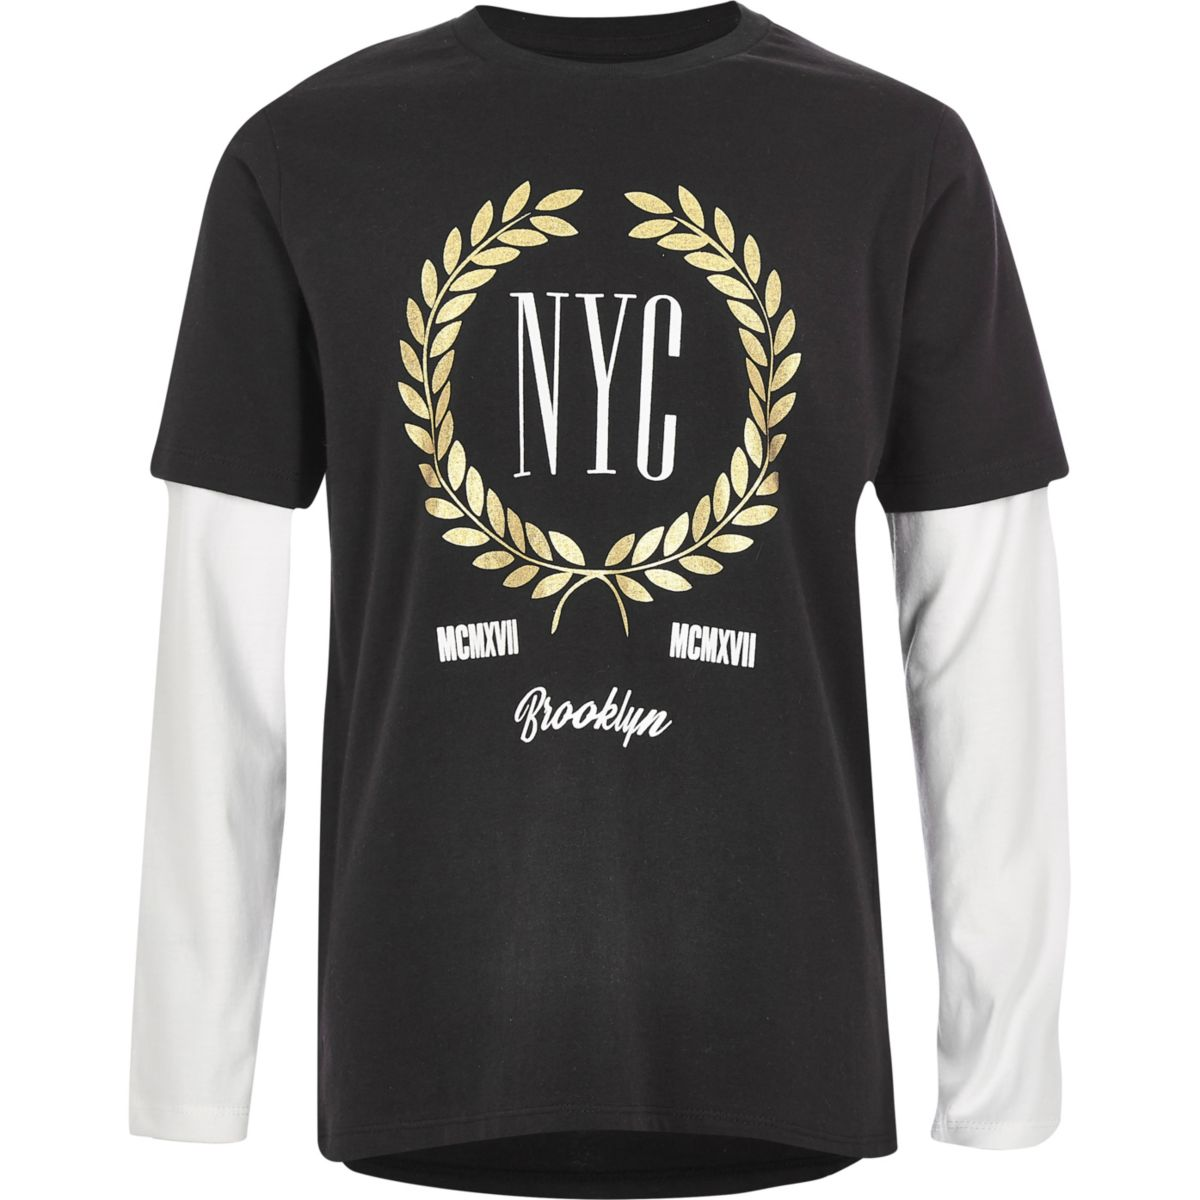 Boys black 'NYC' double sleeve T-shirt